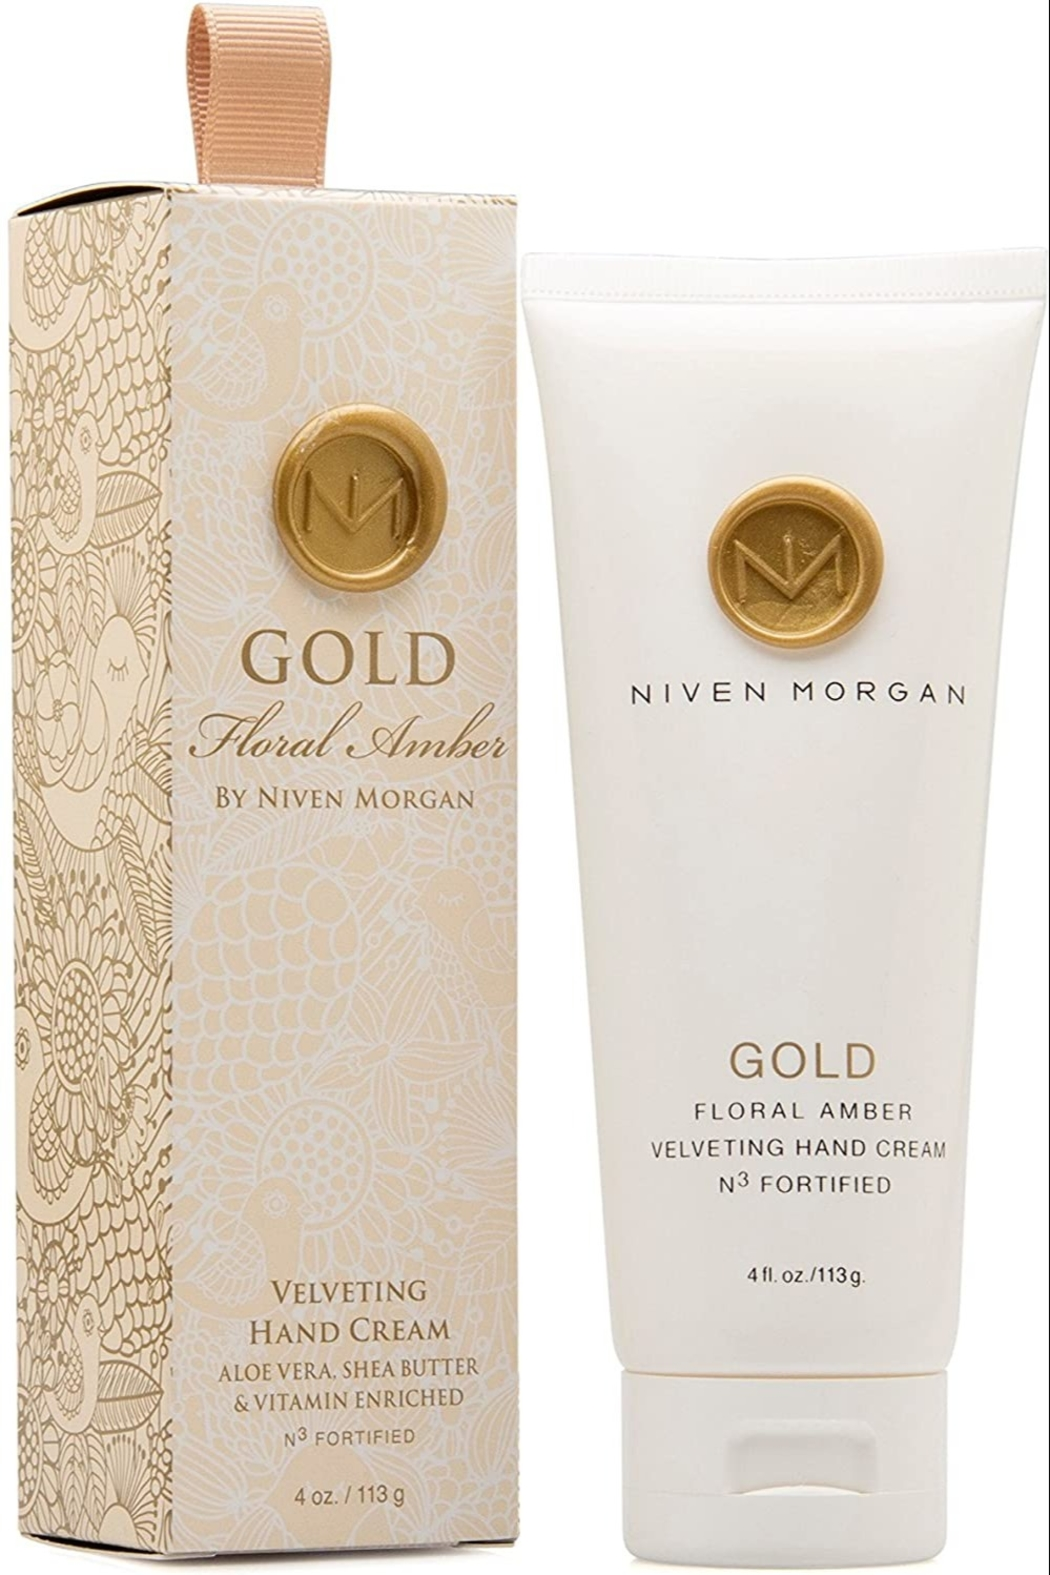 Niven Morgan Gold Floral Amber Velveting Hand Cream 4 oz - Main Image